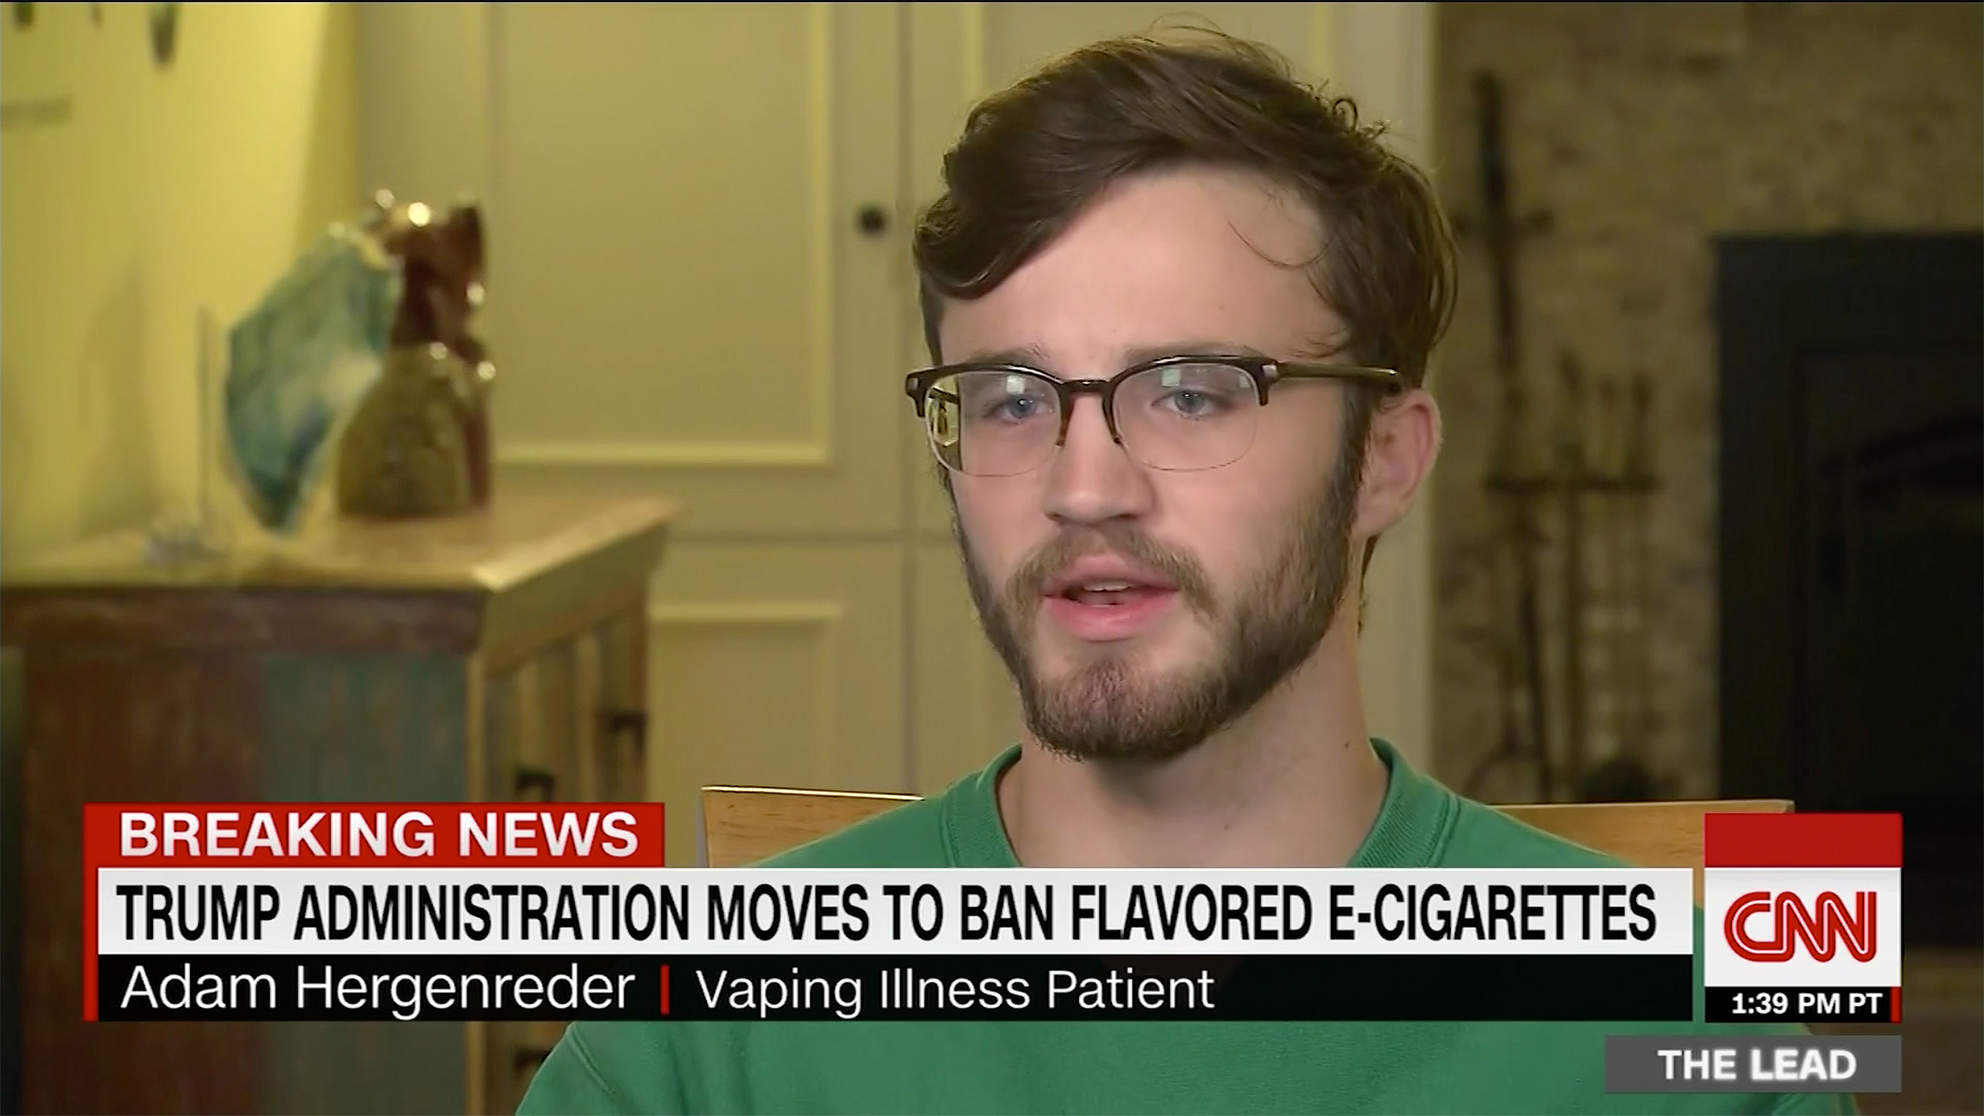 Teen Has Lungs of 'a 70-year-old' from Vaping for Over a Year: 'Every Parent's Worst Nightmare'